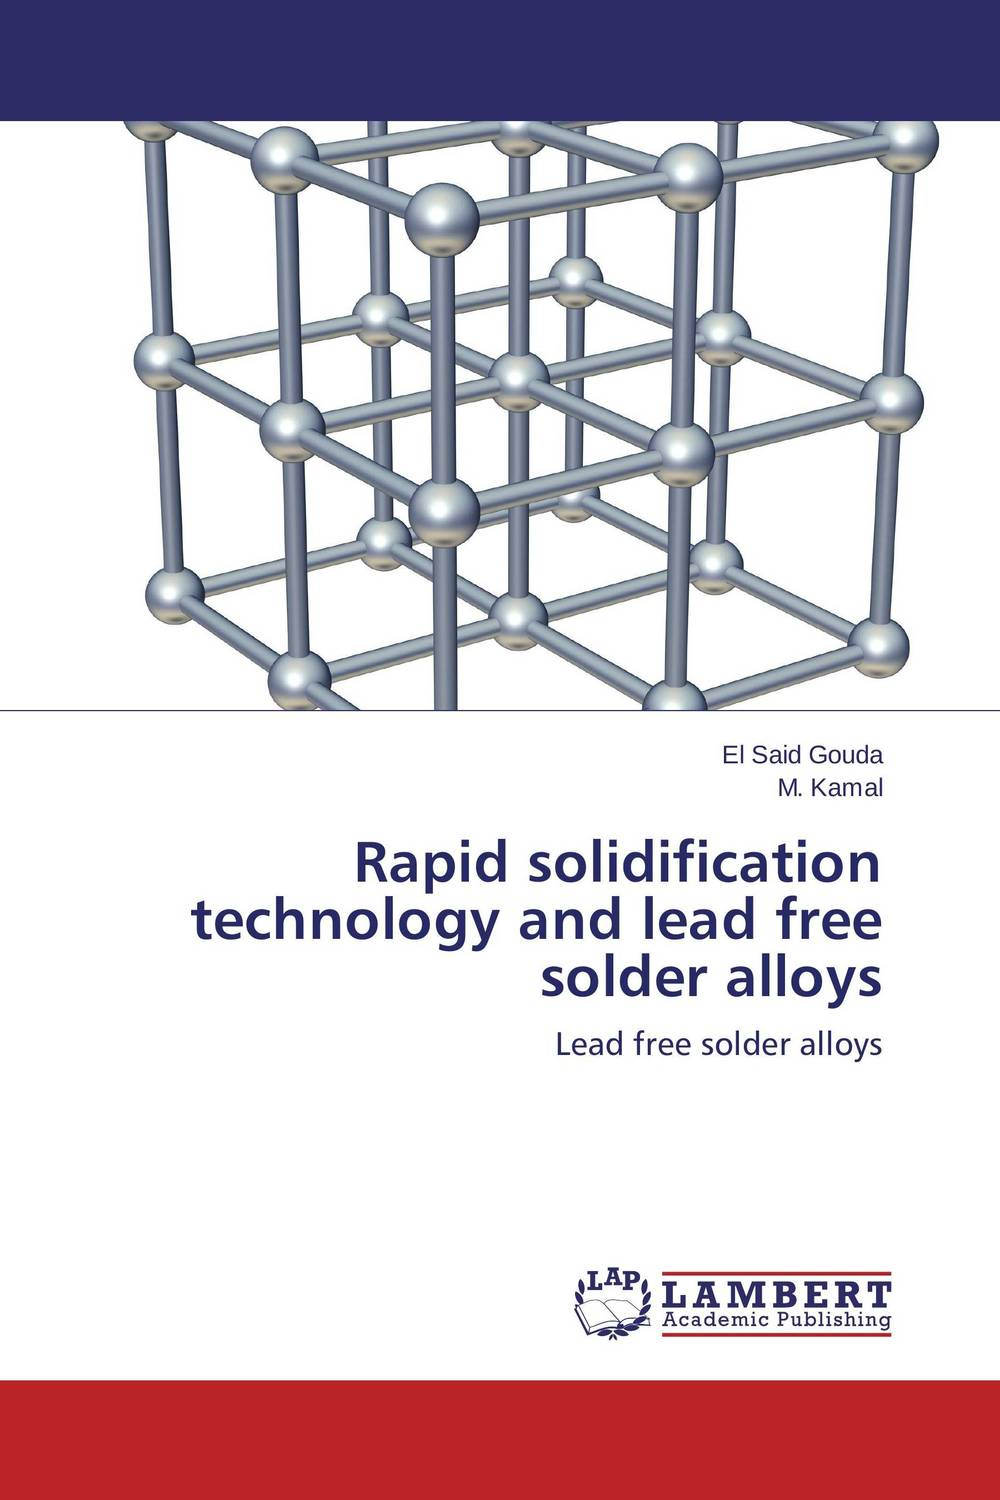 Rapid solidification technology and lead free solder alloys